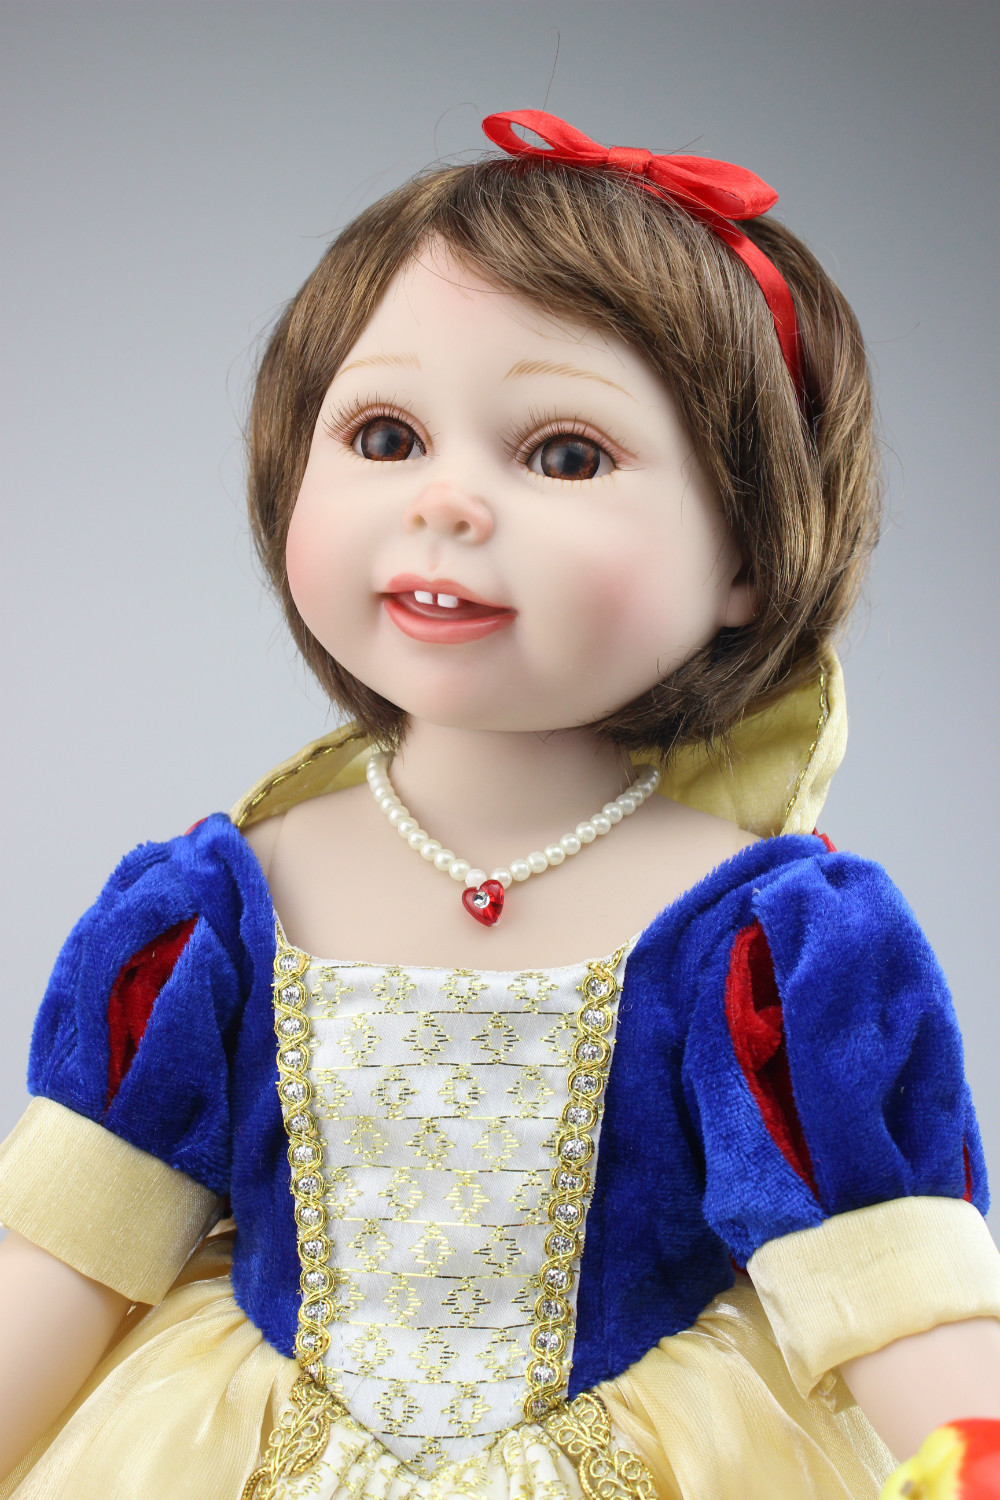 New Style SD/BJD Full Vinyl Babydoll Realistic American Girl Short Hair Style DIY Doll 18inches Children Toys lifelike american 18 inches girl doll prices toy for children vinyl princess doll toys girl newest design